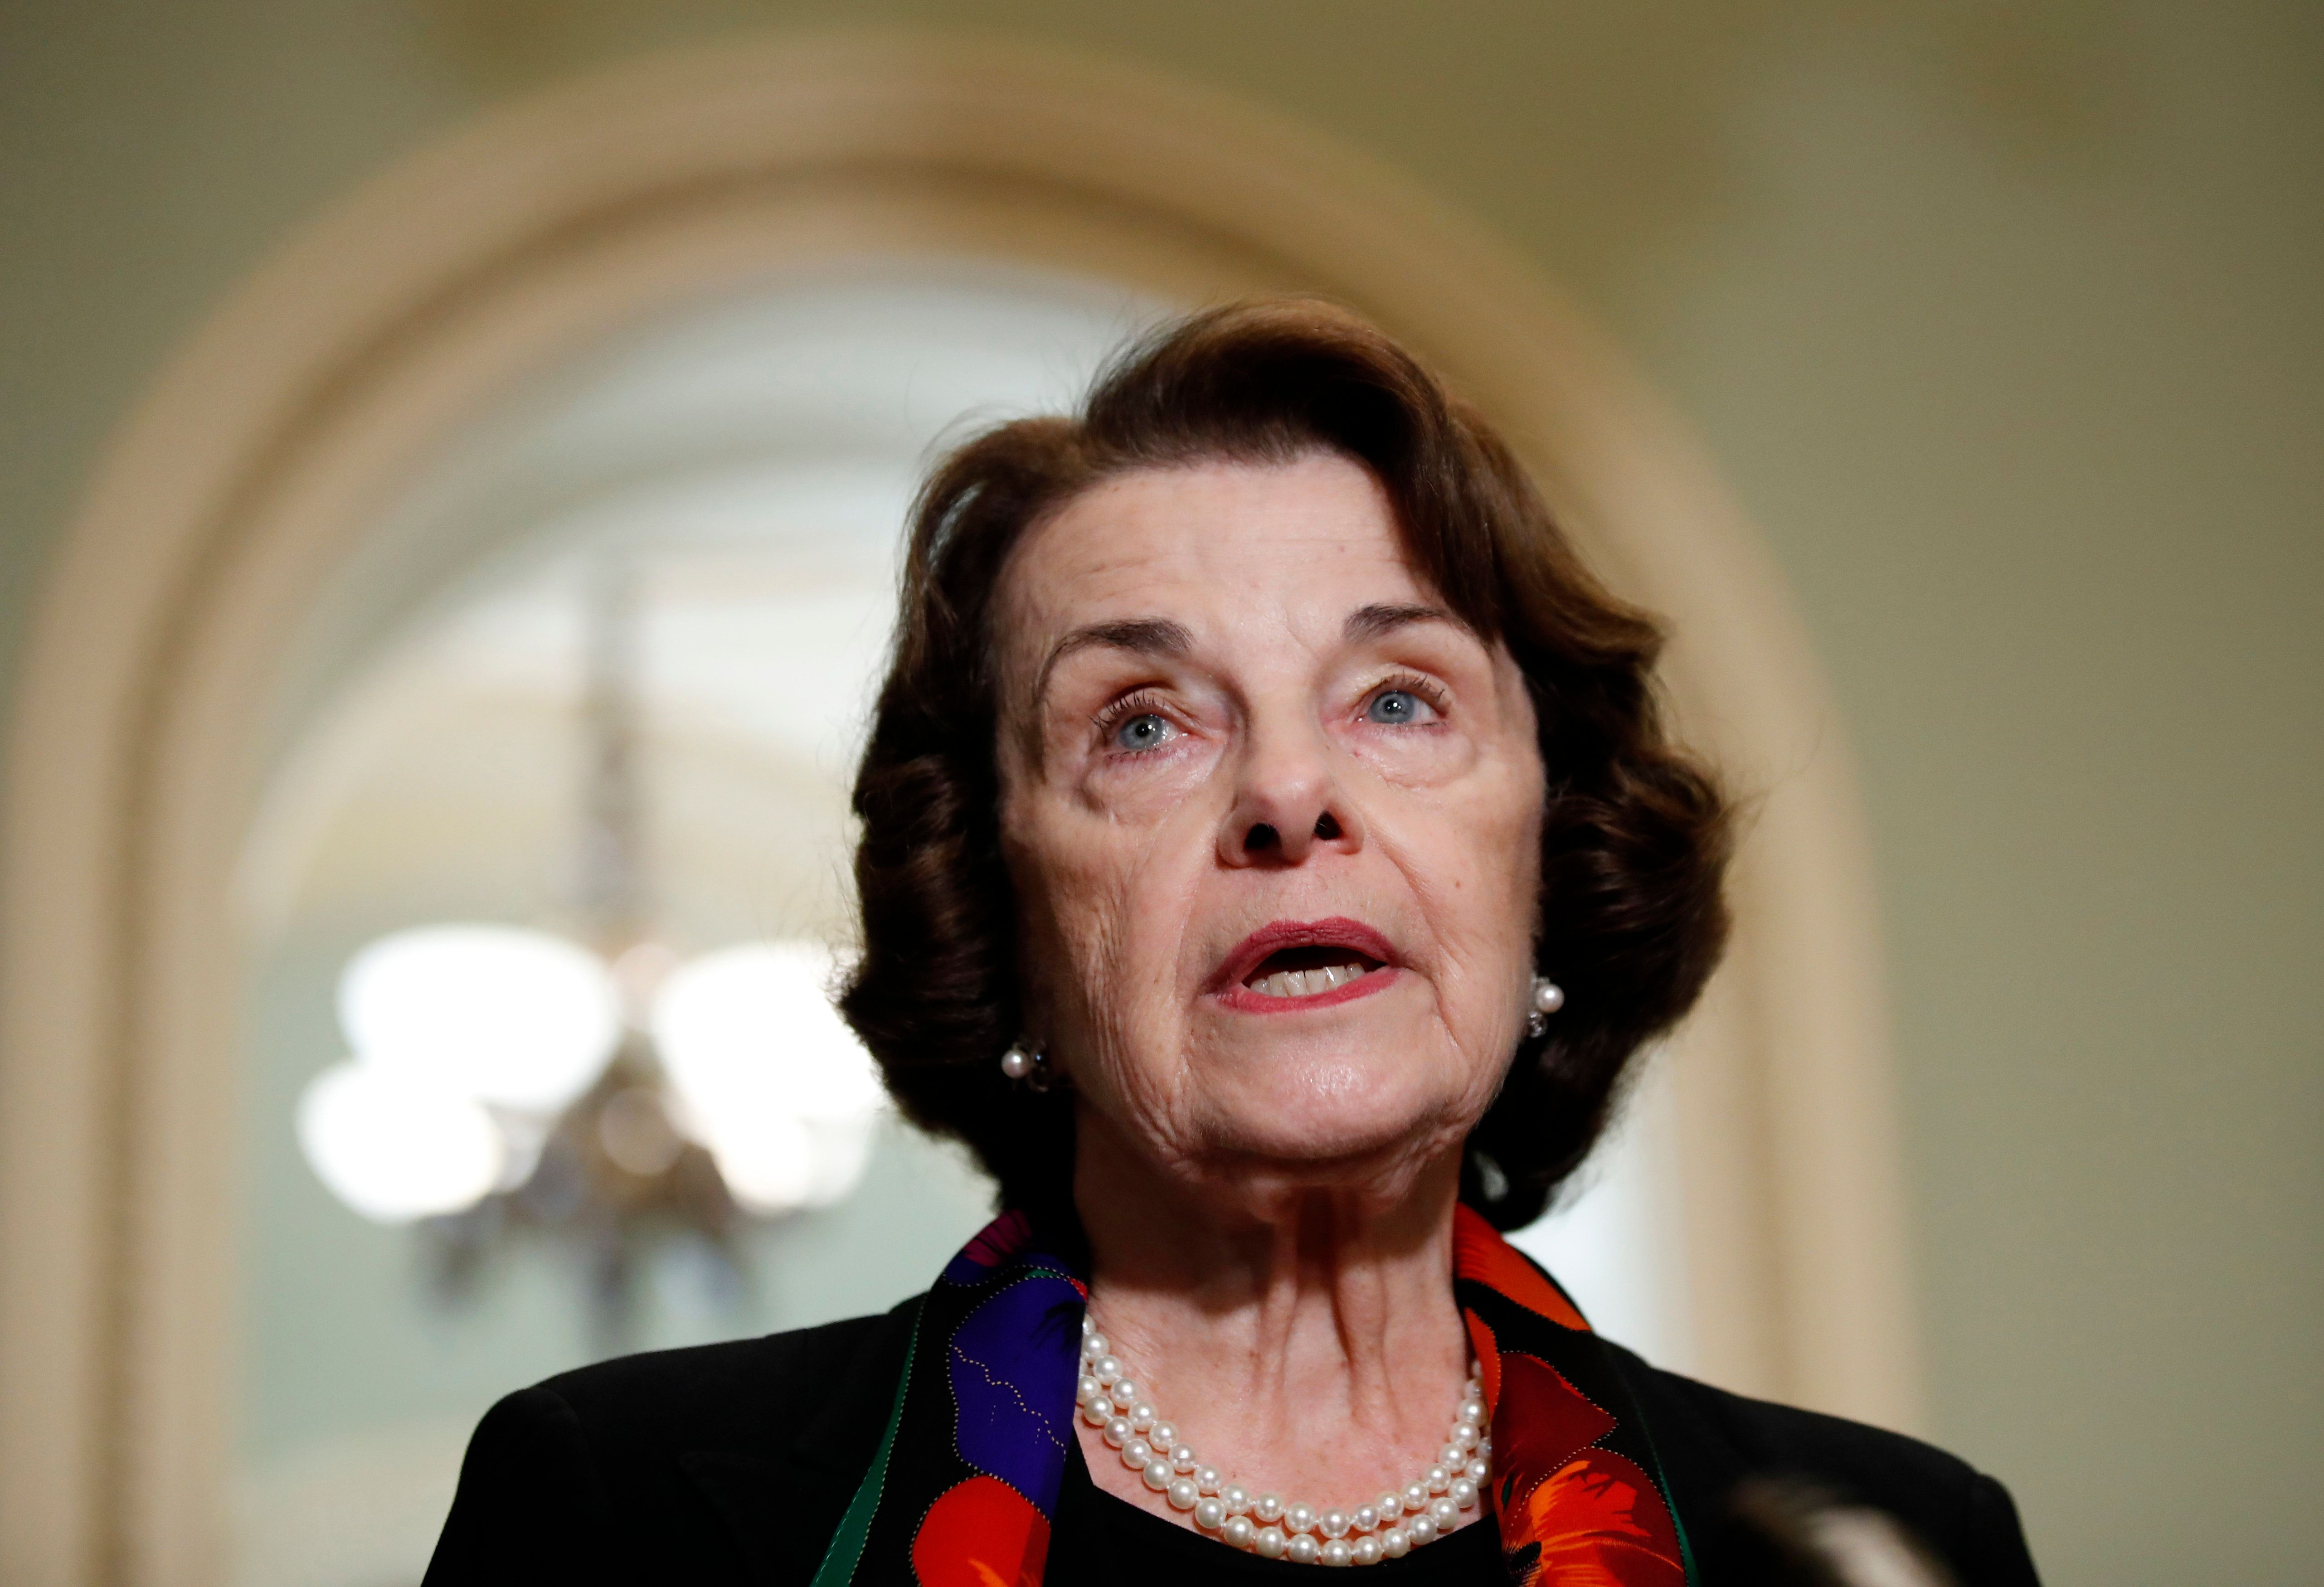 FILE - In this Oct. 4, 2018, file photo Sen. Dianne Feinstein, D-Calif., speaks to the media on Capitol Hill, in Washington. A Southern California man has been arrested after authorities say he sent an email threatening to kill Feinstein, on Sept. 30. (AP Photo/Alex Brandon, file)